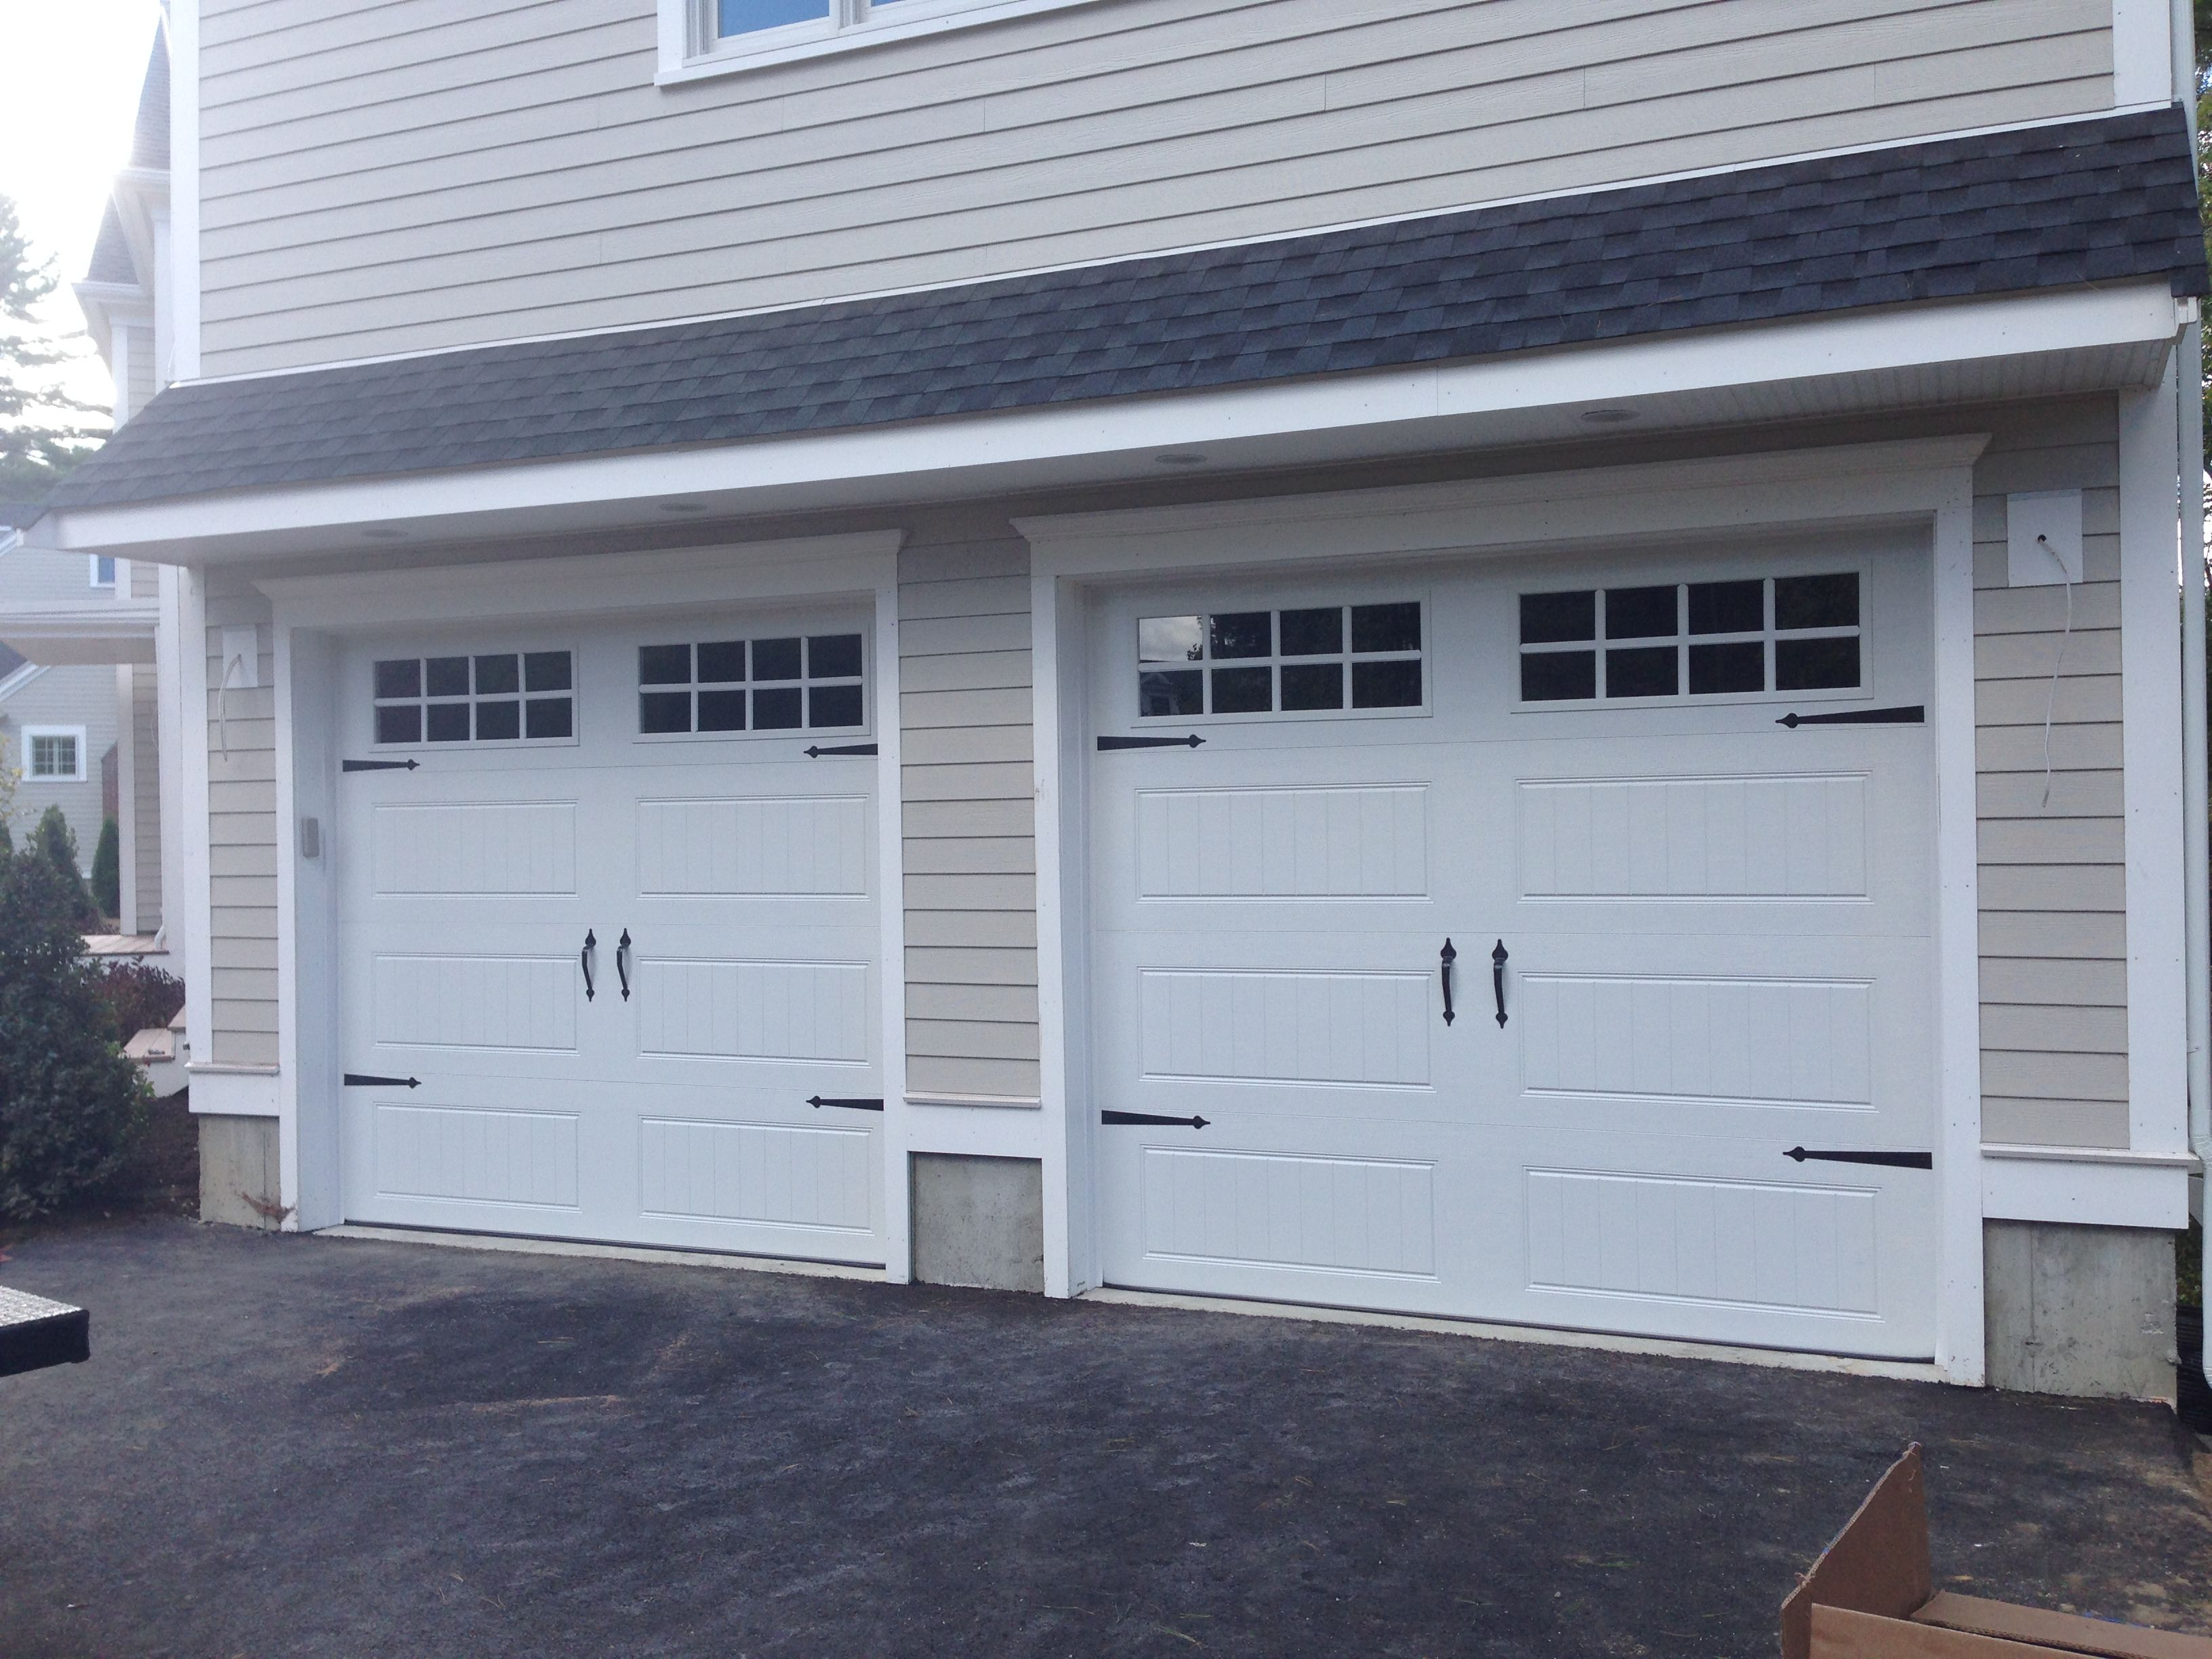 Garage Door Repair Jackson Mi C H I Overhead Doors Model 5916 Long Panel In White With